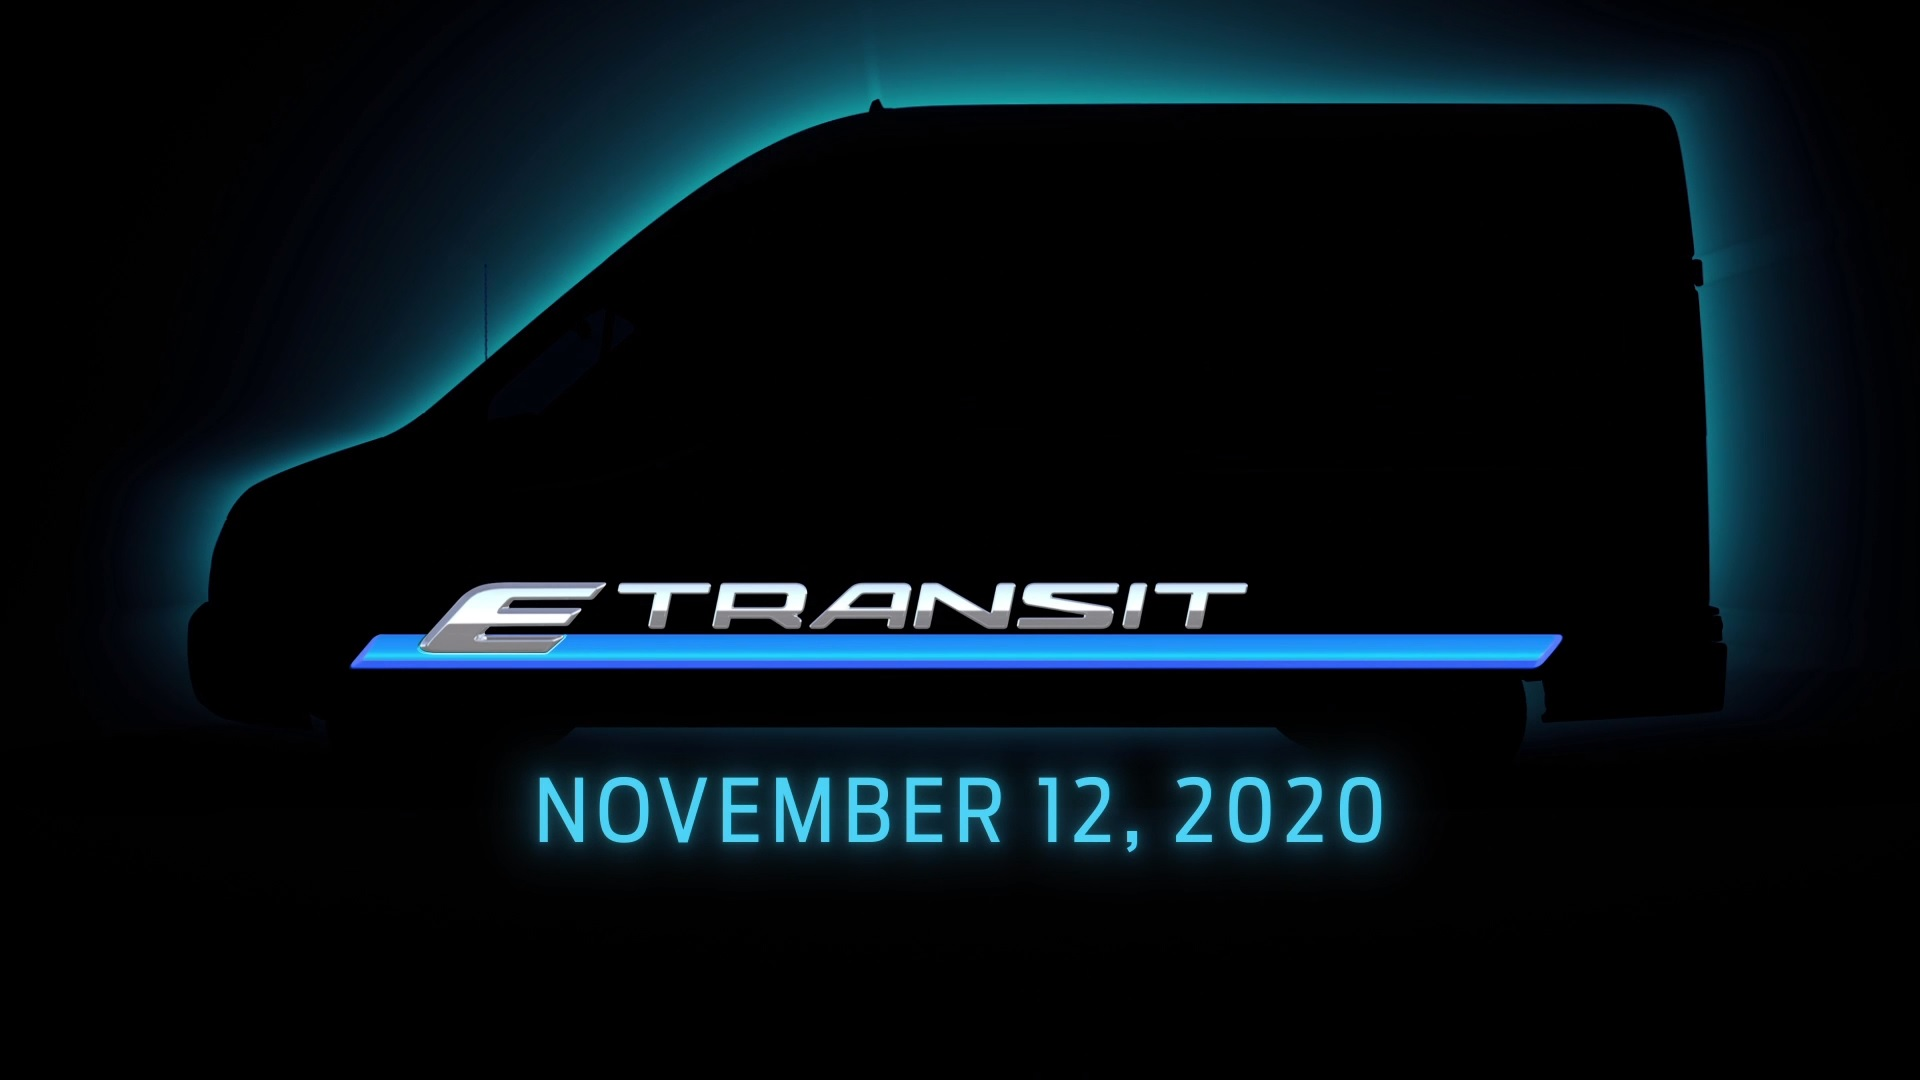 Ford Prepares to Unveil E-Transit on Nov. 12